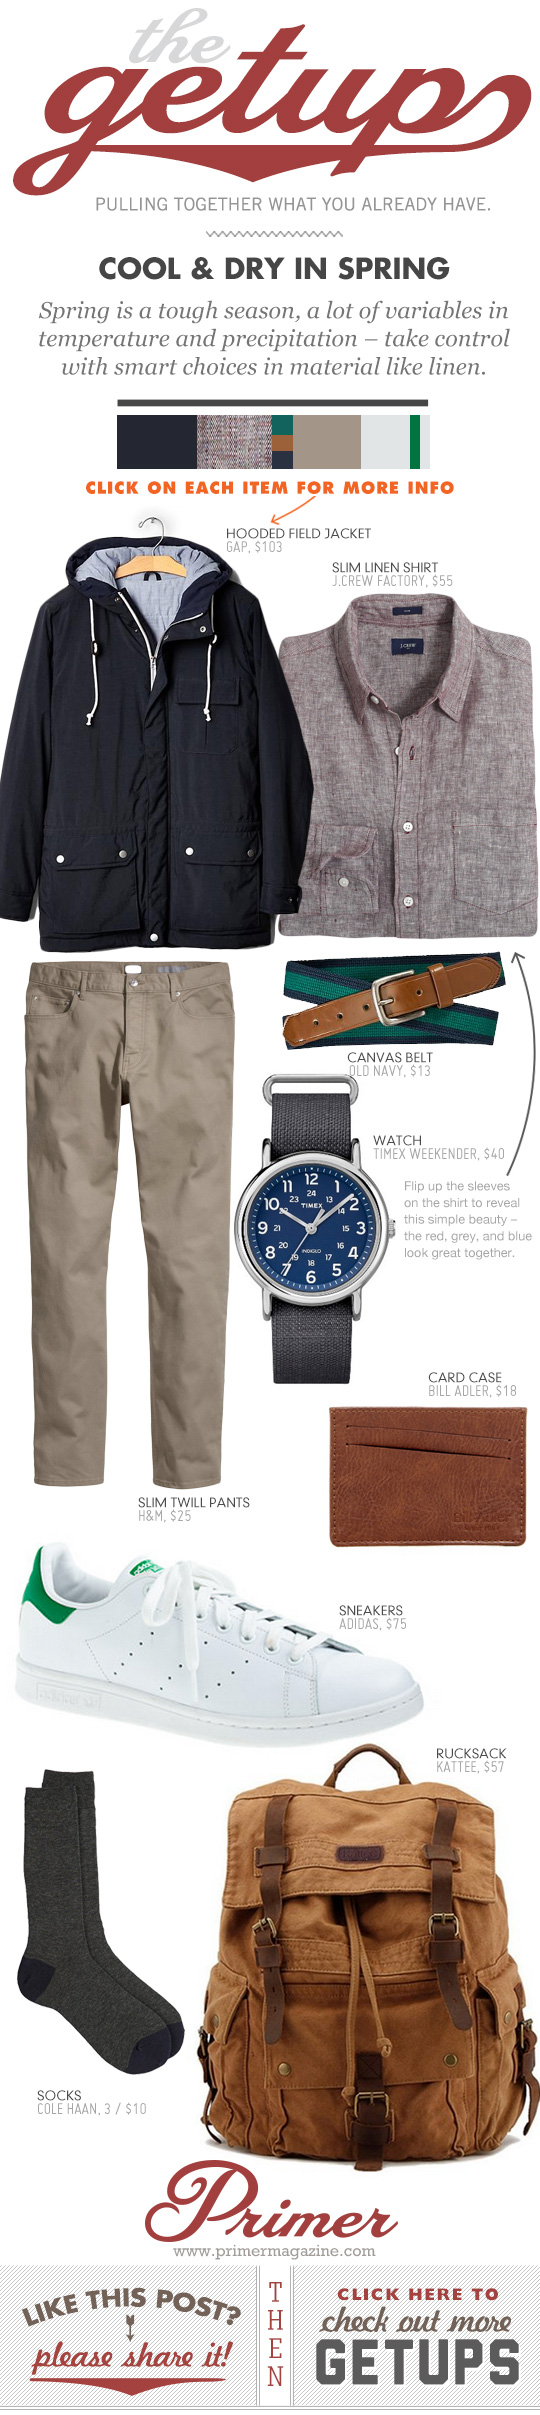 Getup - Cold and Dry in Spring outfit - anorak with shirt, tan pants, and Stan Smith sneakers